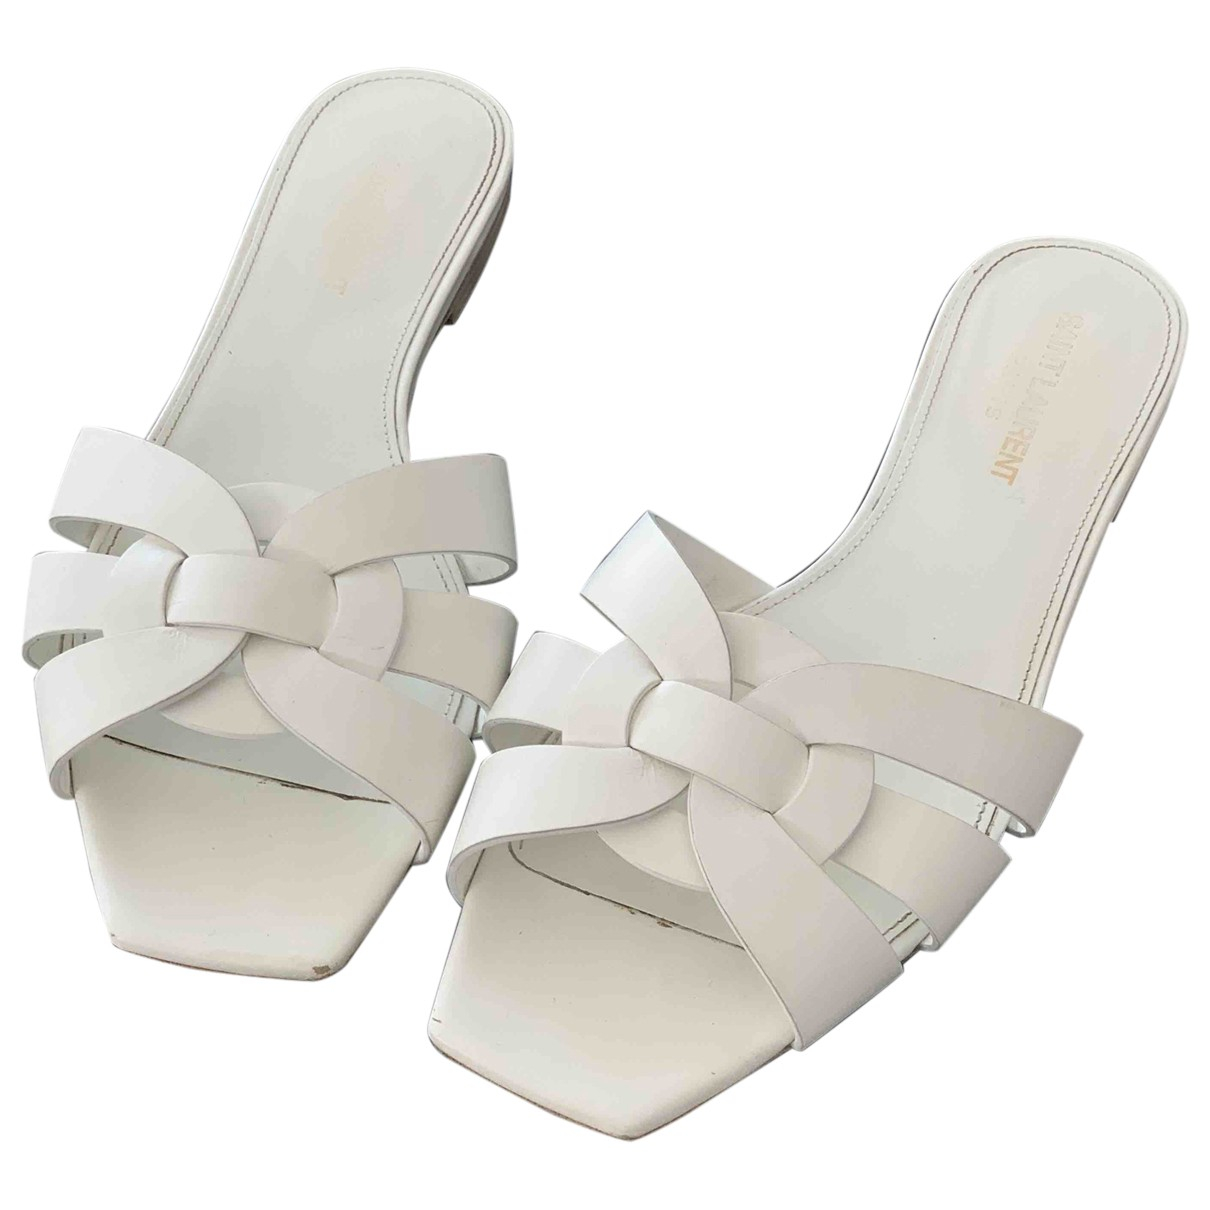 Saint Laurent Tribute White Leather Sandals for Women 38.5 EU